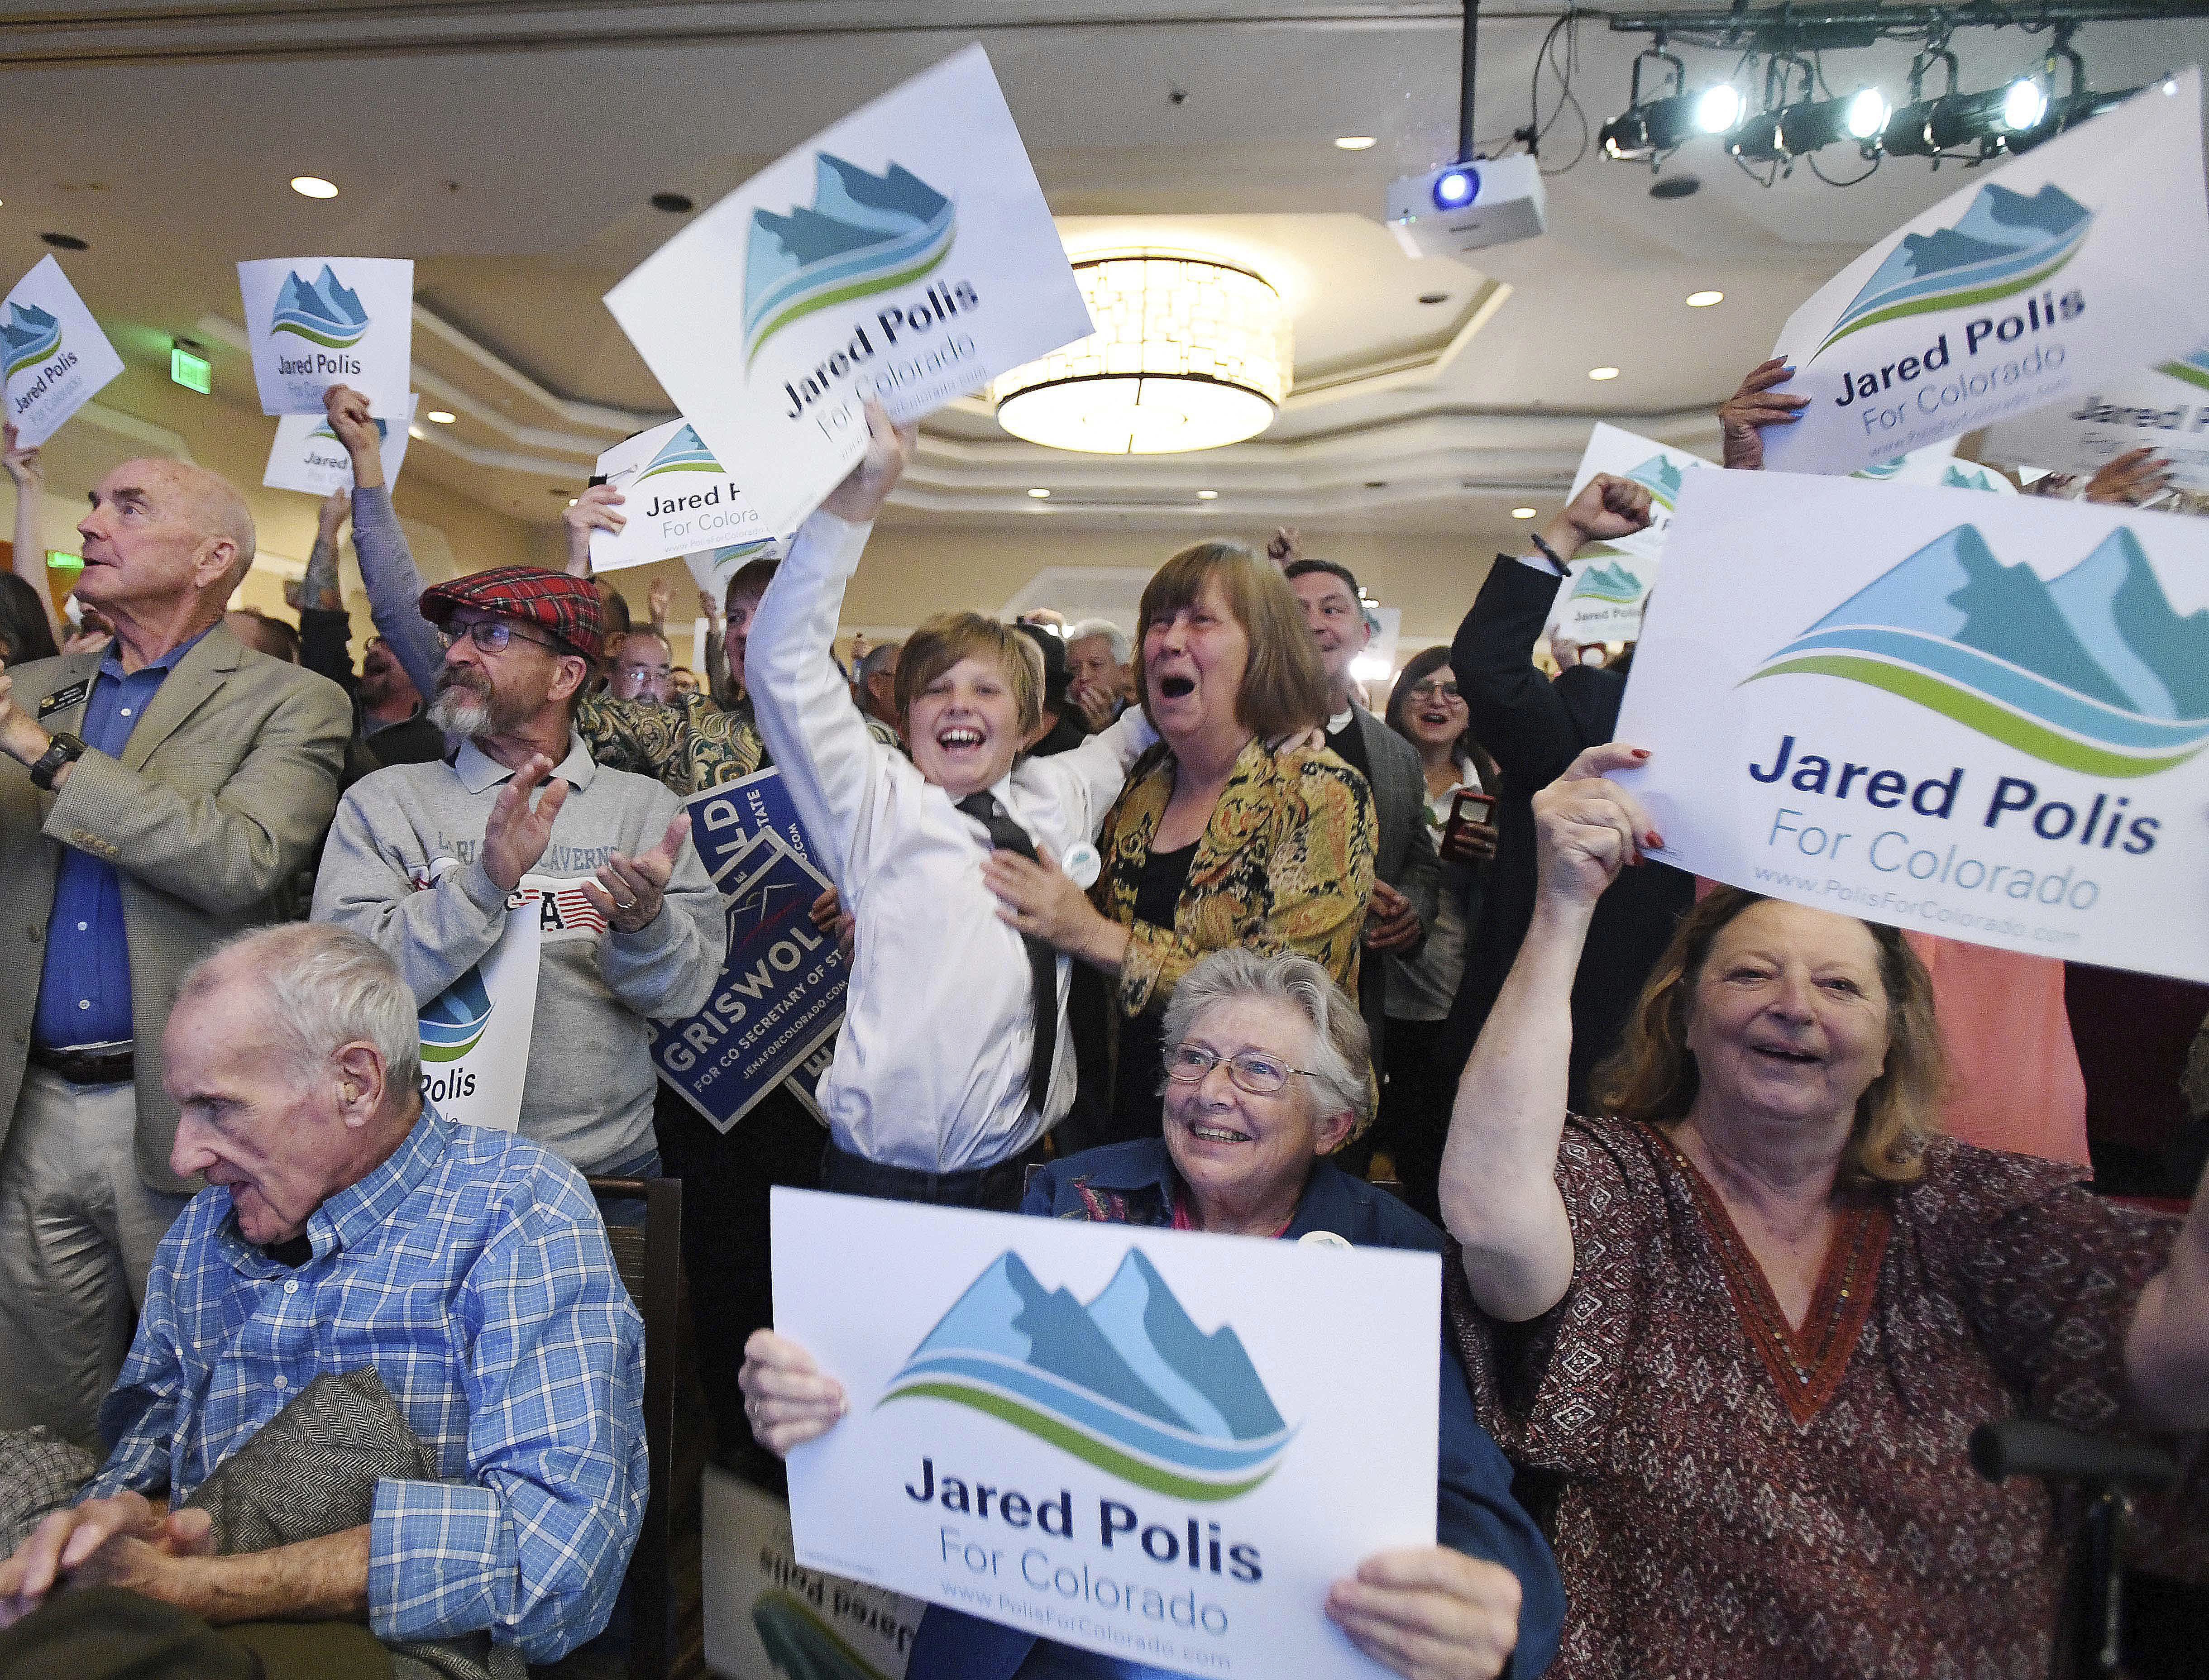 Democrats erupt when the Colorado Governor race is called for gubernatorial candidate Jared Polis at the Democratic watch party at the Westin Hotel in downtown Denver, Tuesday, Nov. 6, 2018. (Jerilee Bennett/The Gazette via AP)